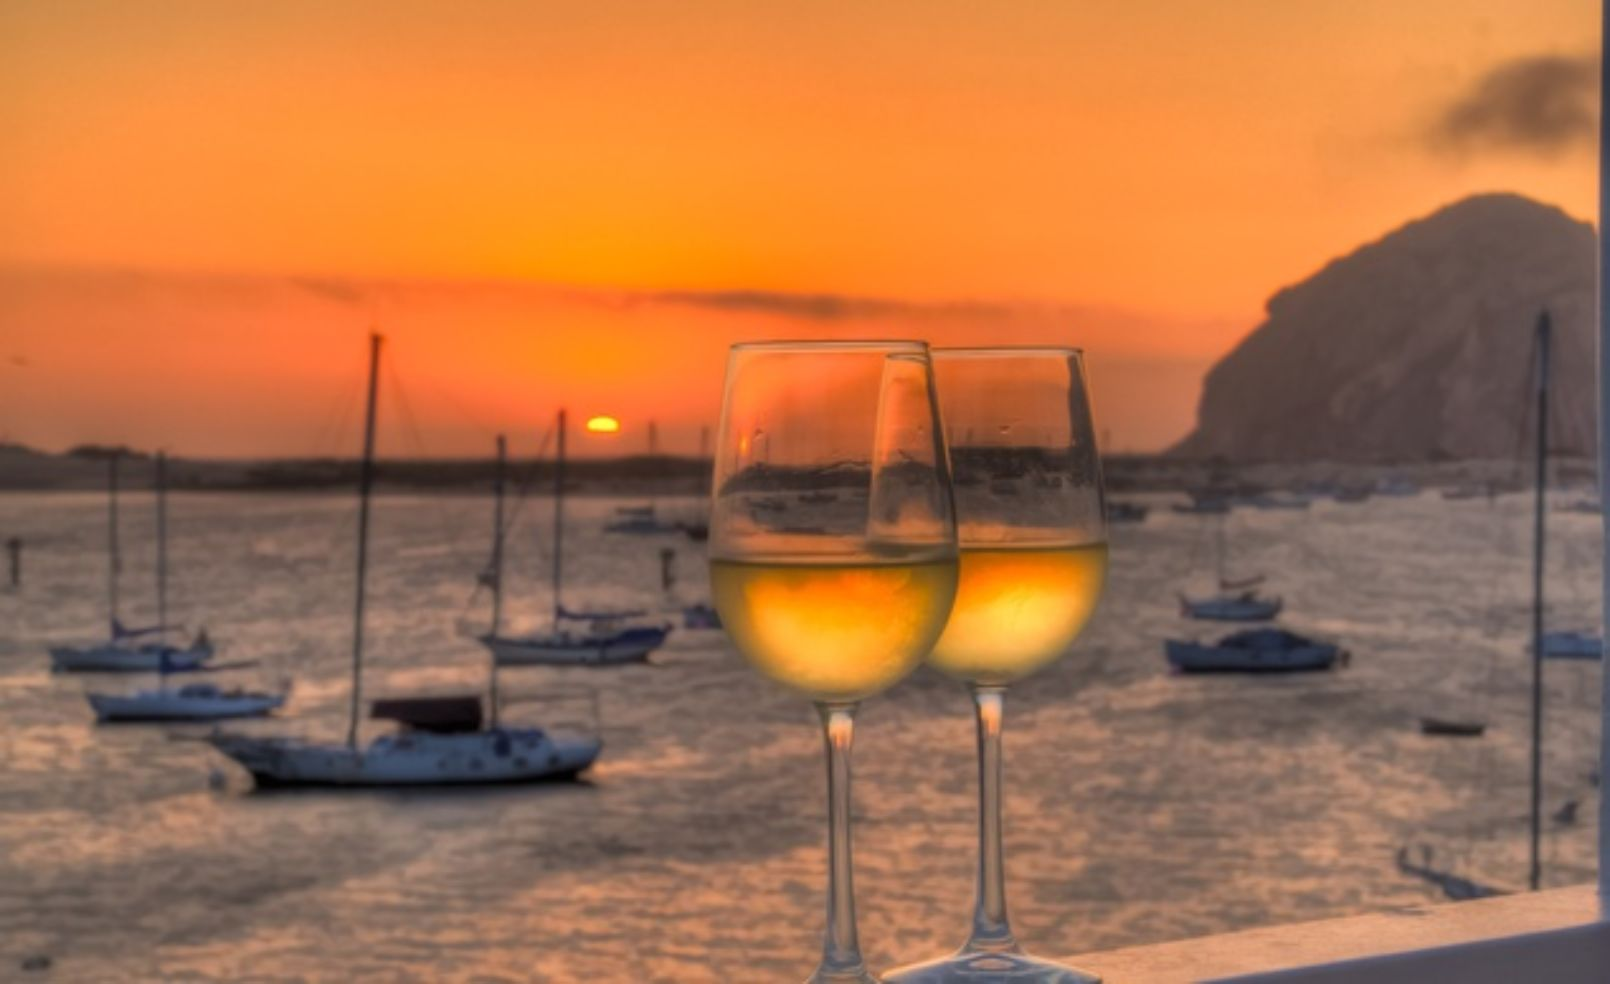 morro-bay-wine-glasses